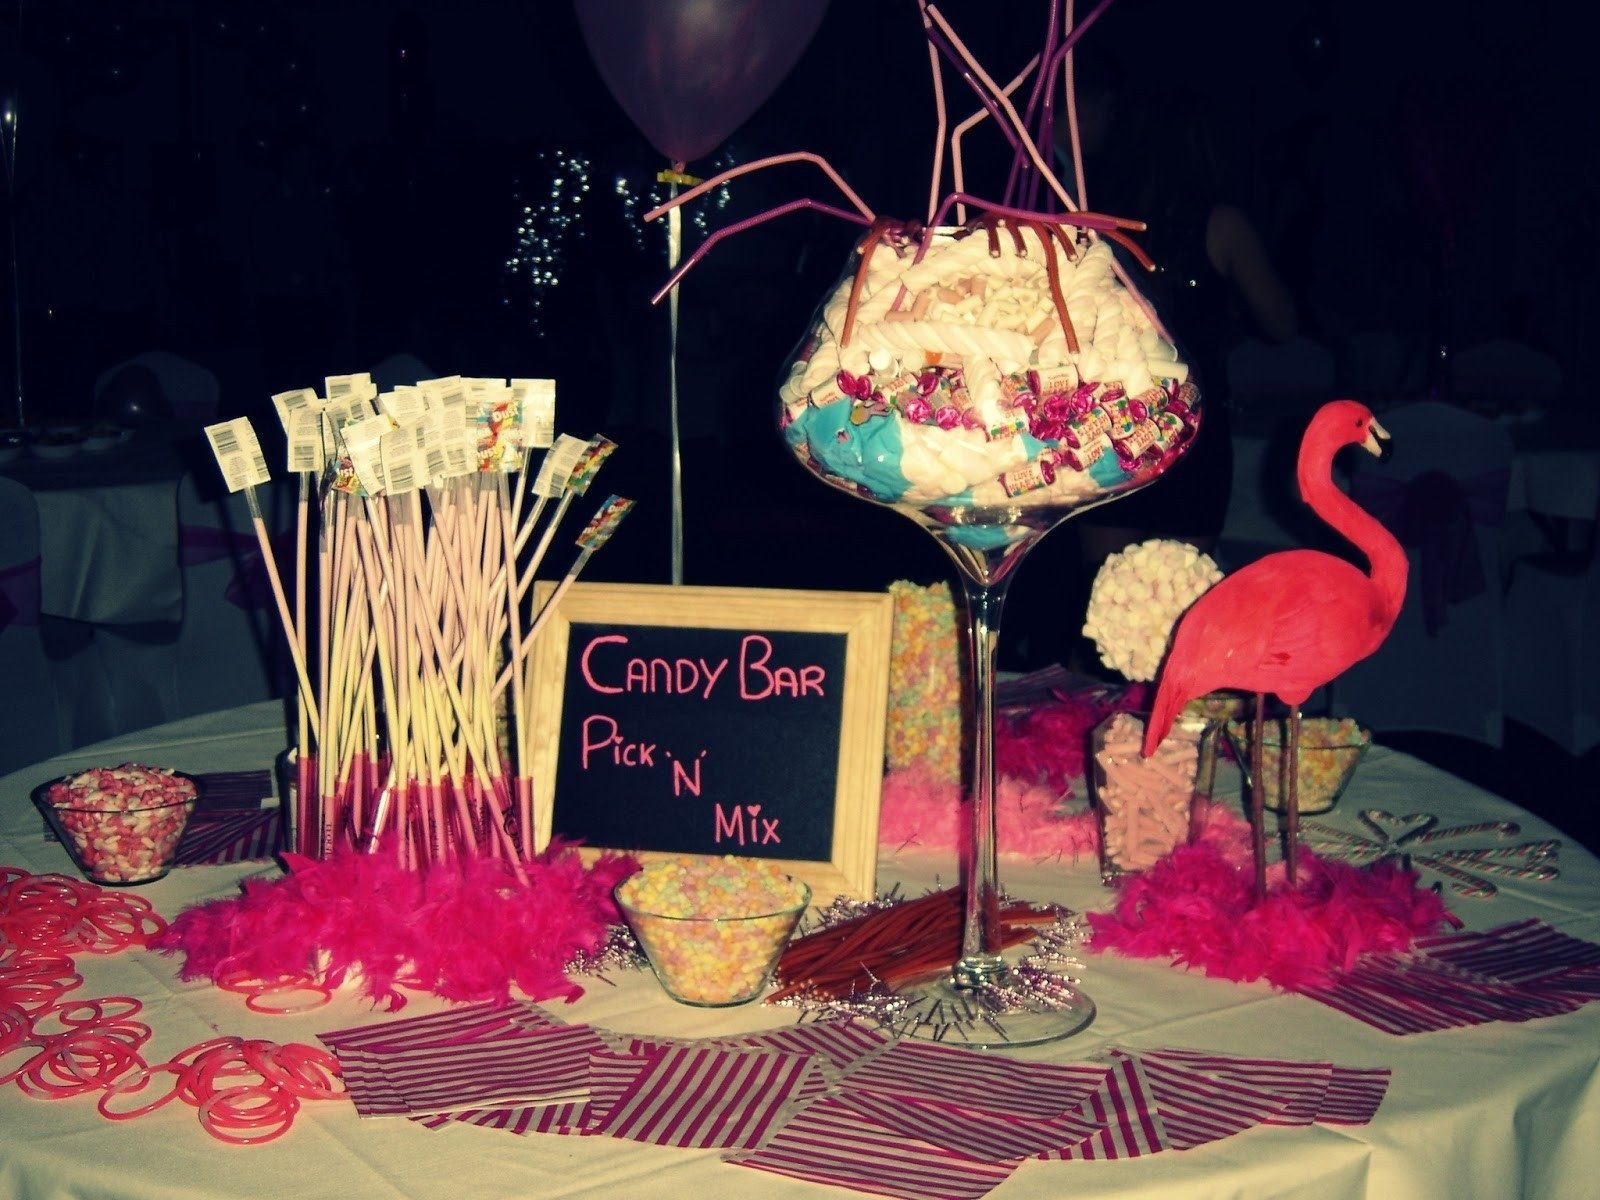 10 Wonderful Party Ideas For 18Th Birthday how to plan a surprise birthday party at home inspirational 18th 2020